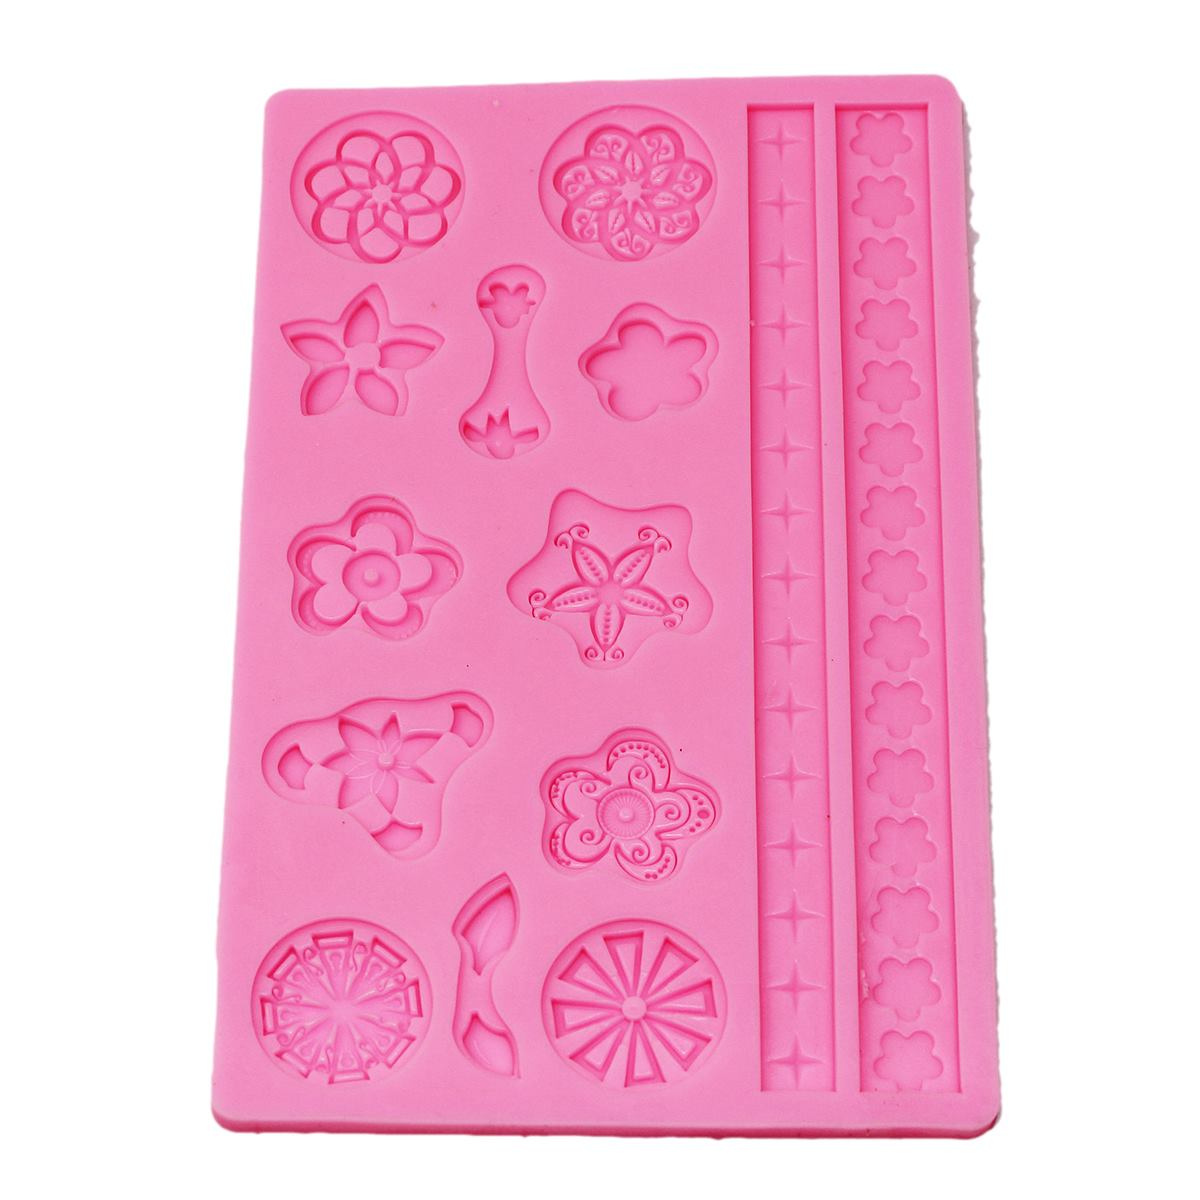 Resin Silicone Mould Flower Pattern & Lace Design Design